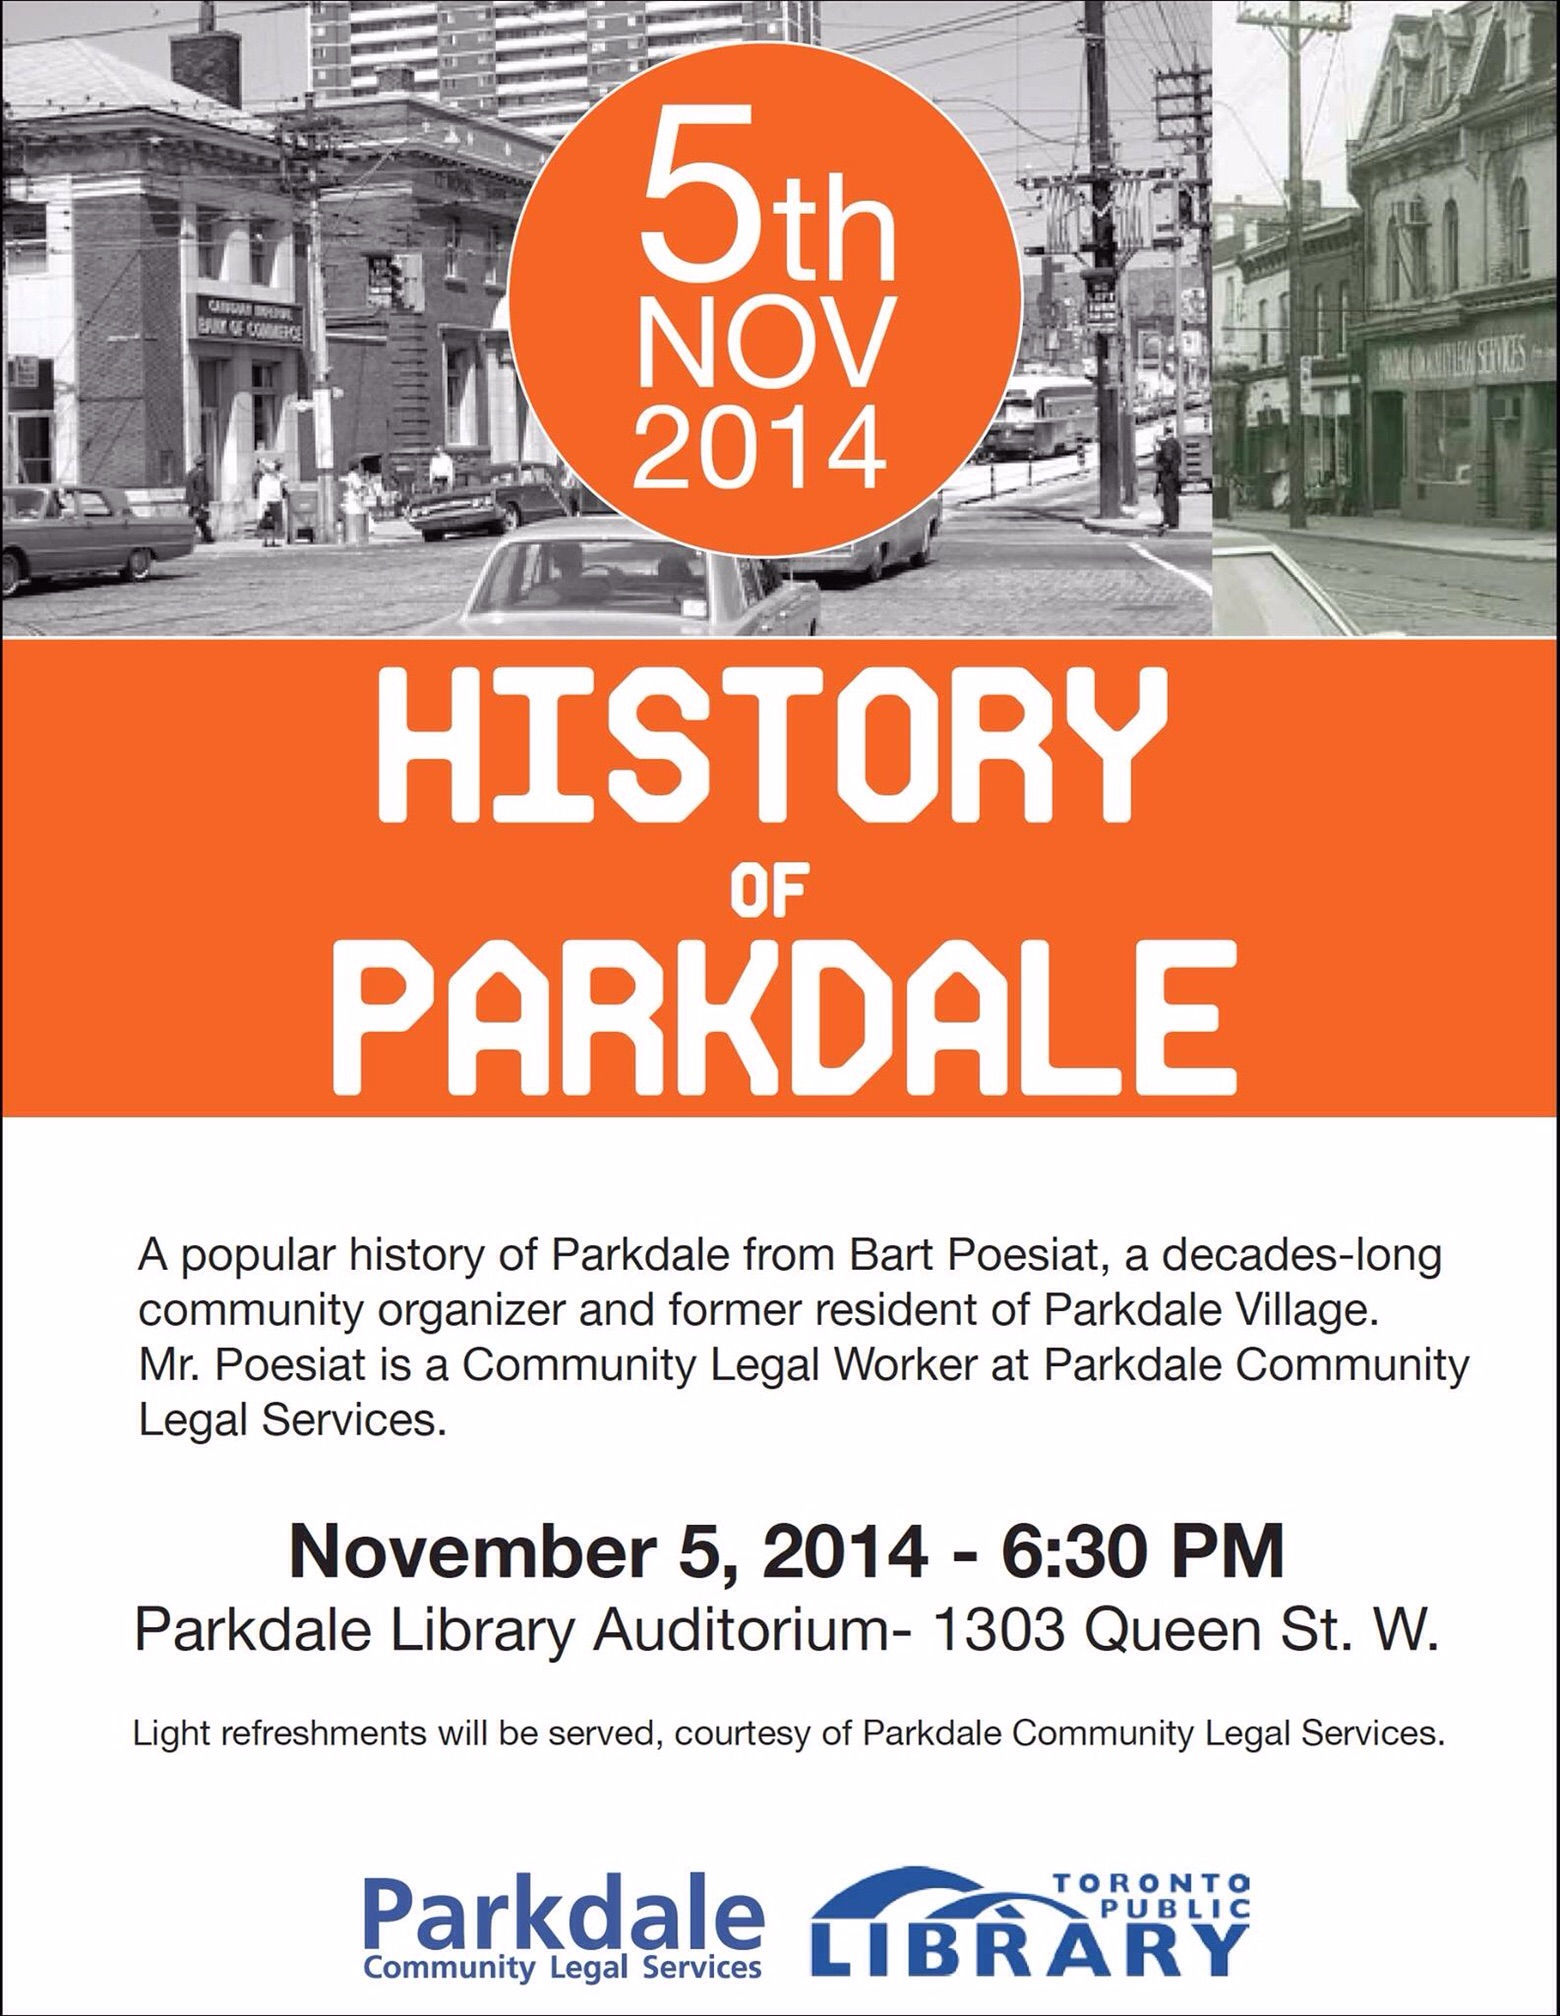 History of Parkdale, Nov 5, 2014 6:30 Library Auditorium